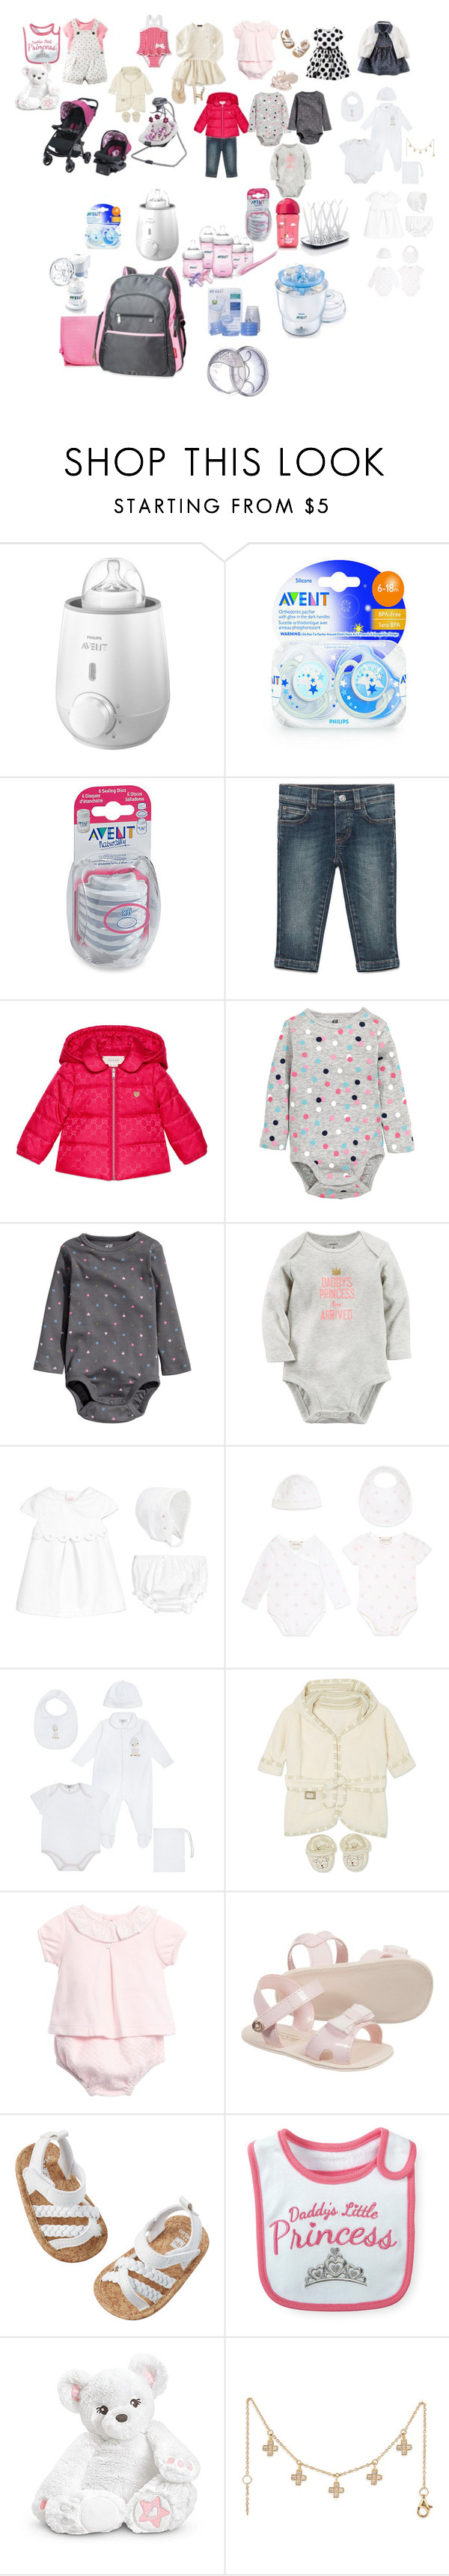 """""""Untitled #21"""" by lauracruzsoriano-2 on Polyvore featuring Philips, Gucci, Graco, H&M, Armani Junior, Calvin Klein, Laranjinha, Carter's and Nayla Arida"""